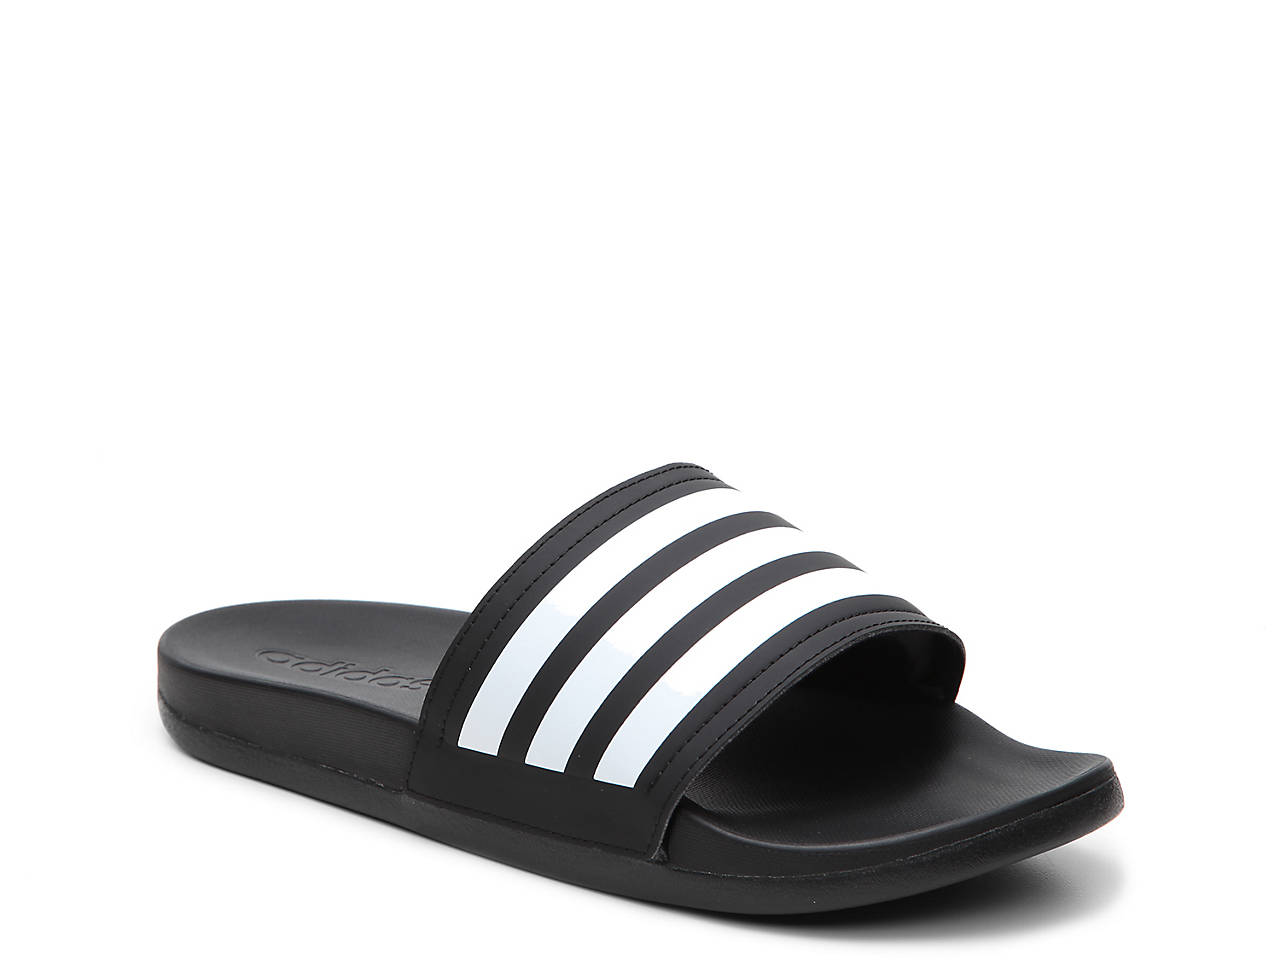 c61998be6518 adidas Adilette Cloudfoam Ultra Stripes Slide Sandal - Women s ...